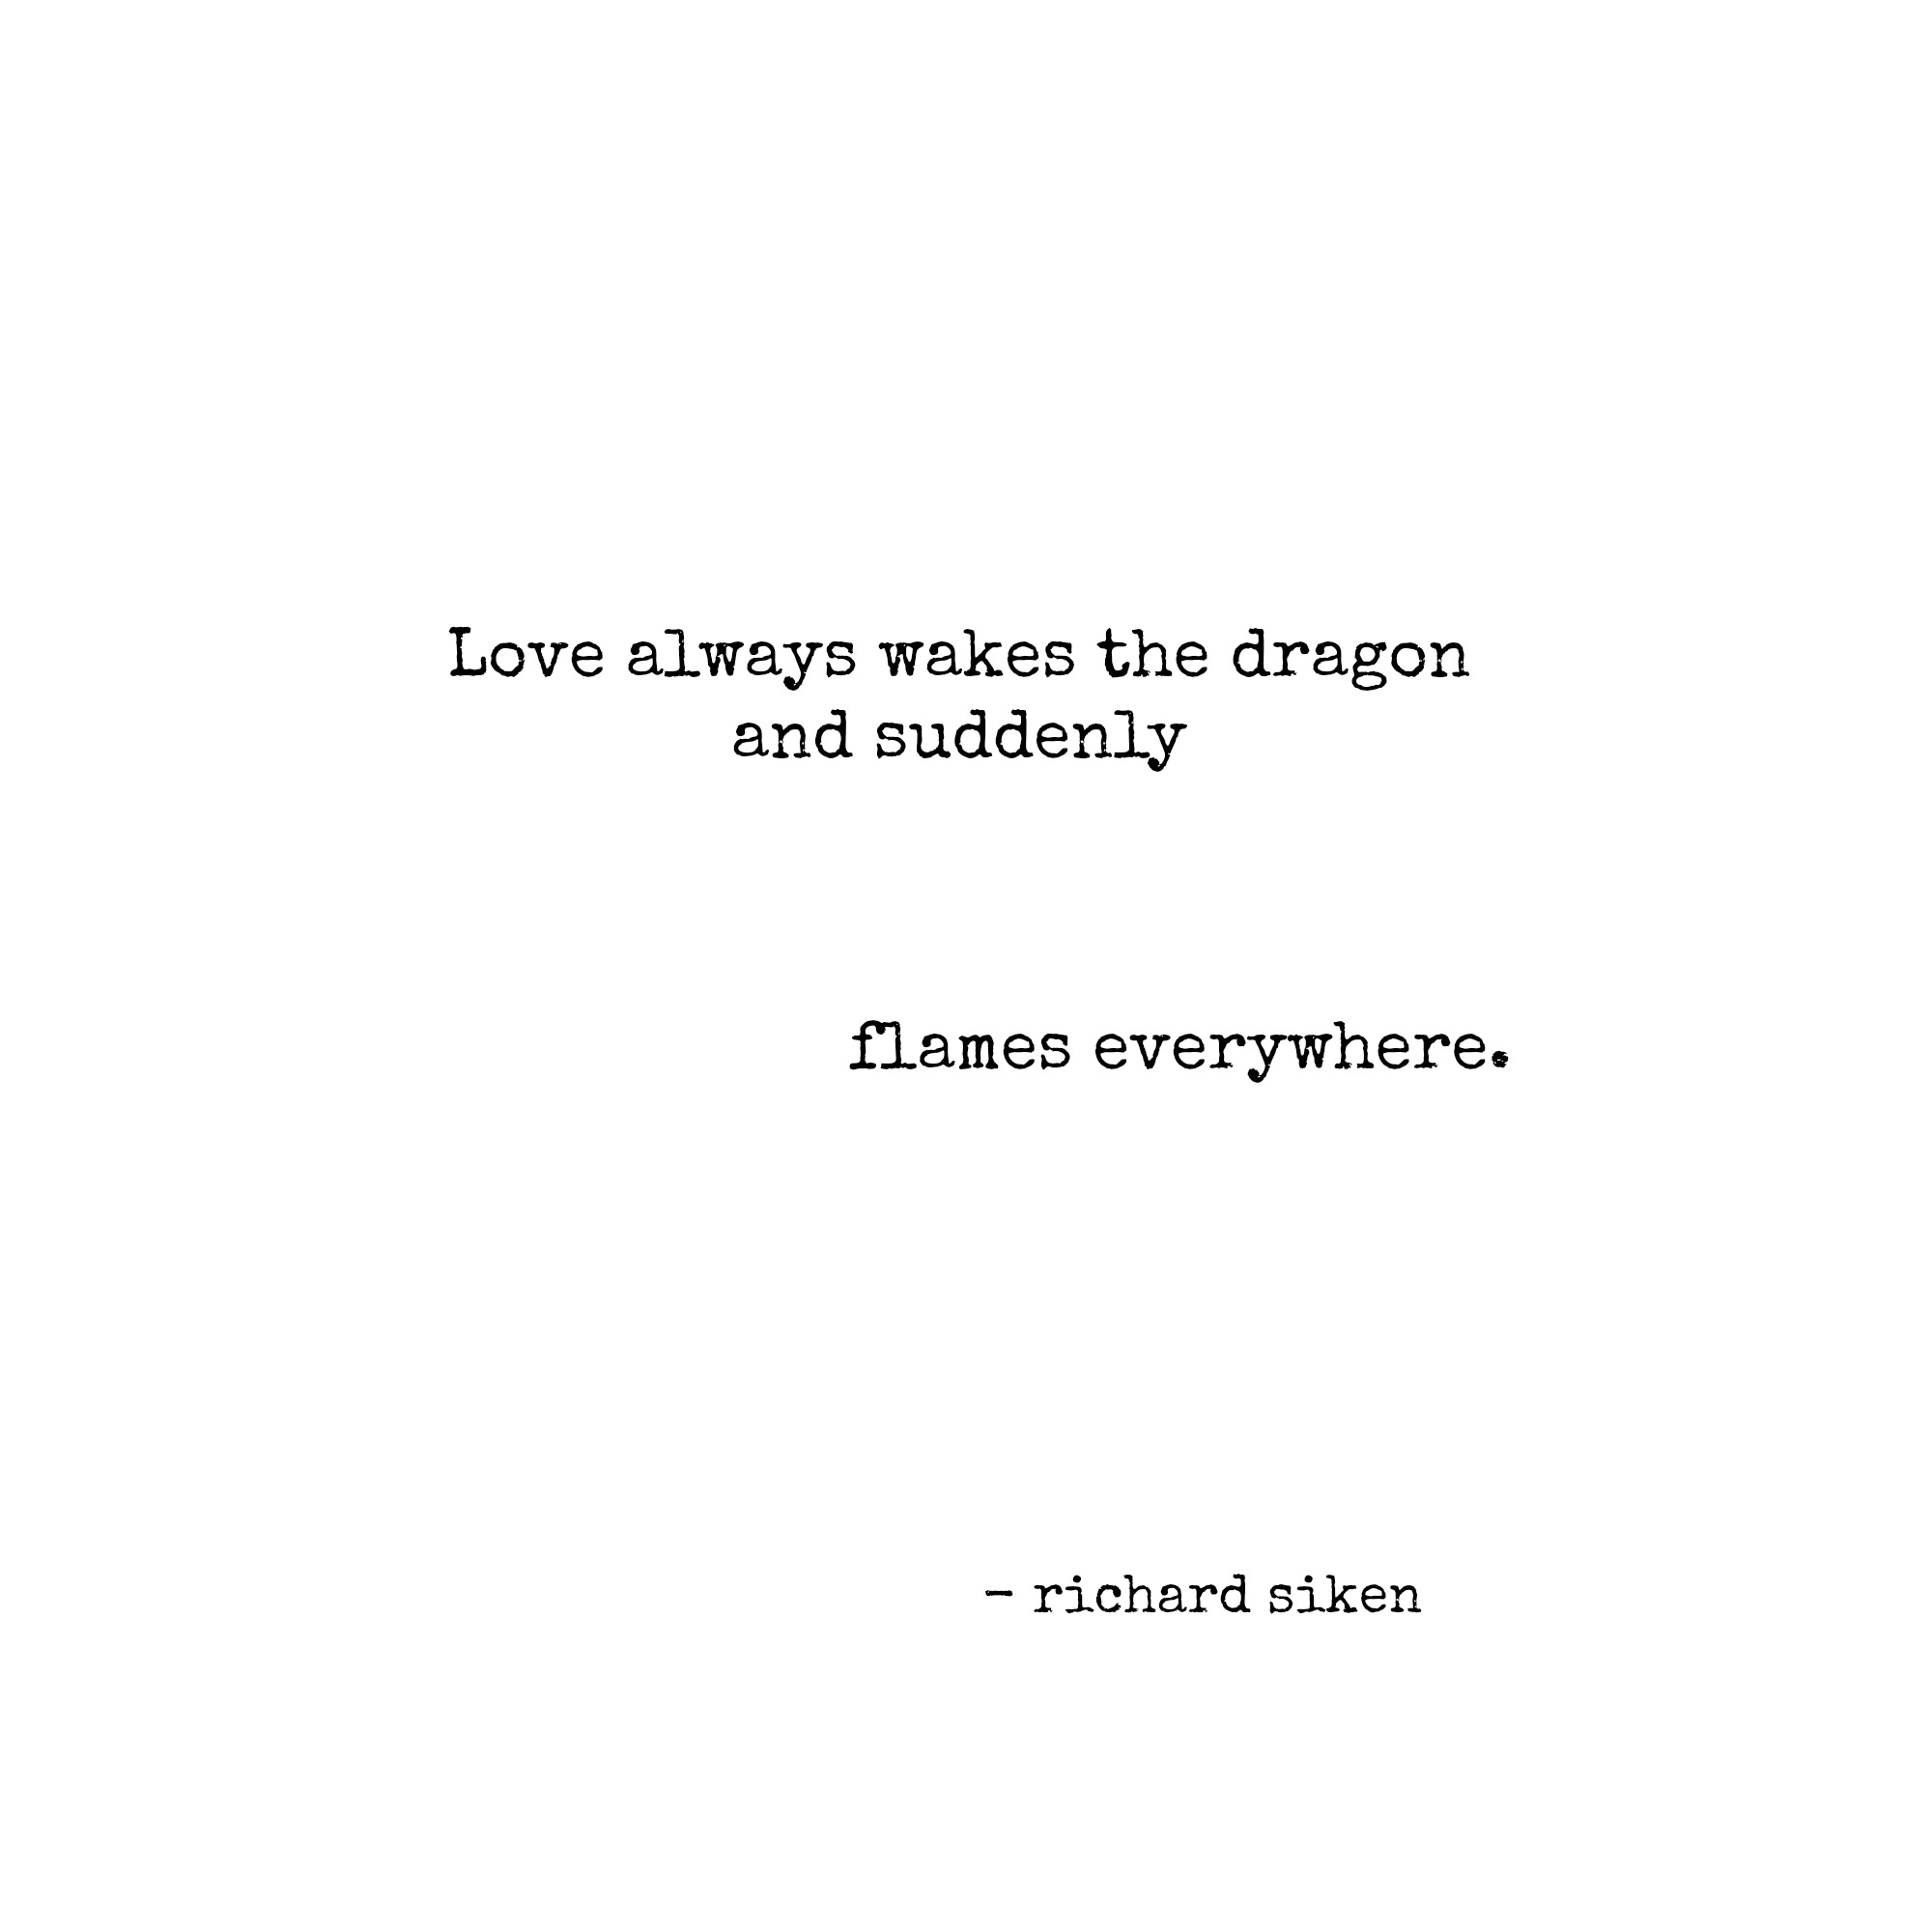 Love wakes the dragon